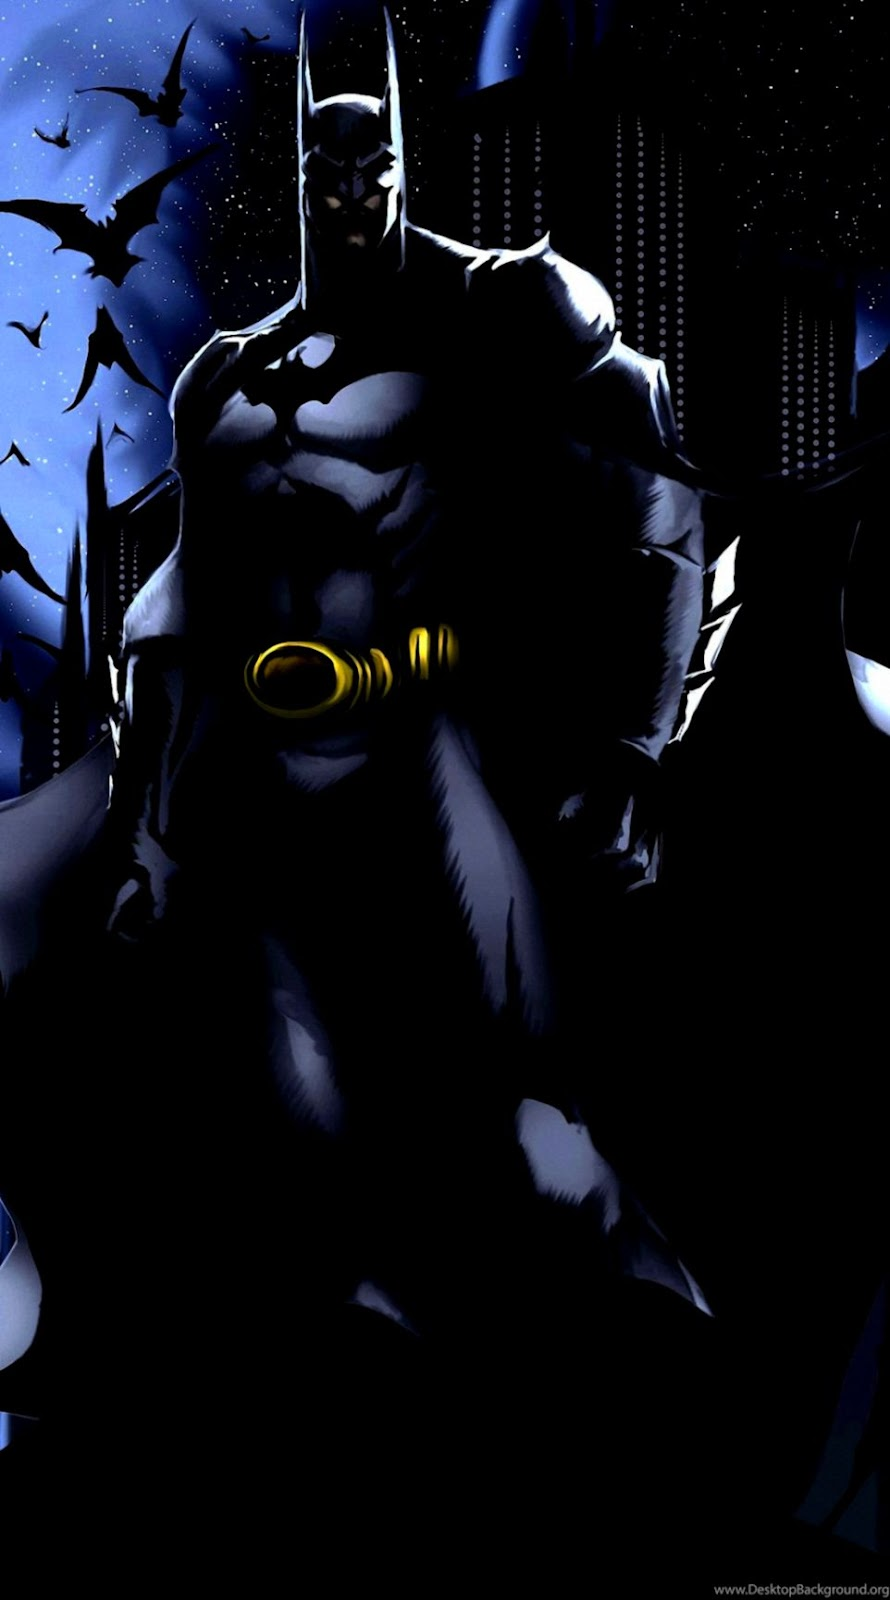 Batman Iphone Wallpapers Hd 1440x2560 High Definition Wallpapers